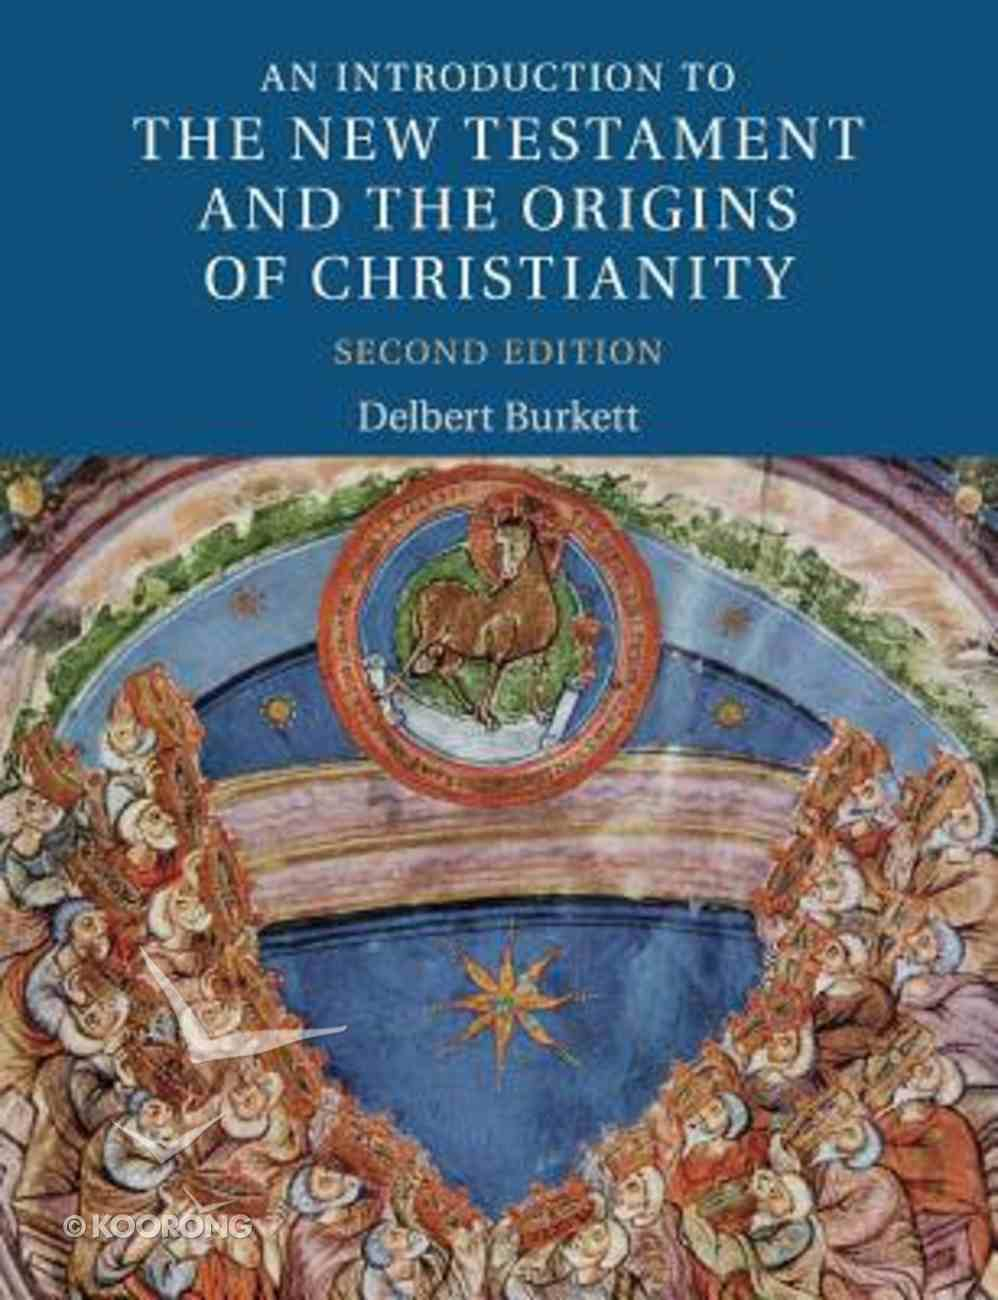 An Introduction to the New Testament and the Origins of Christianity (2nd Edition) Paperback